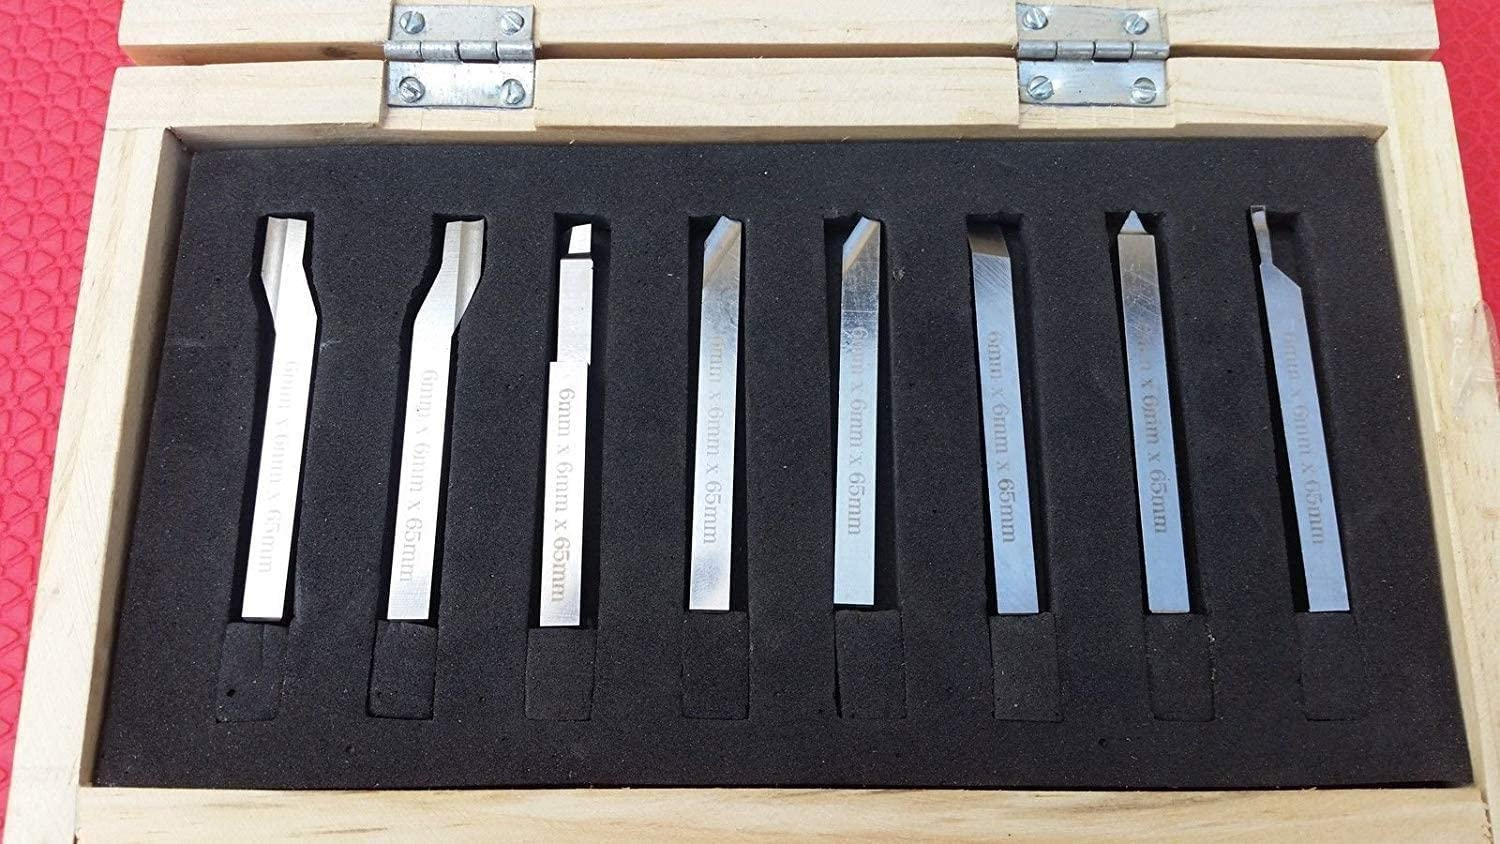 HSS Lathe Form Tools Set 12 mm Square Shank - Metalworking Turning Threading Engineering Tools